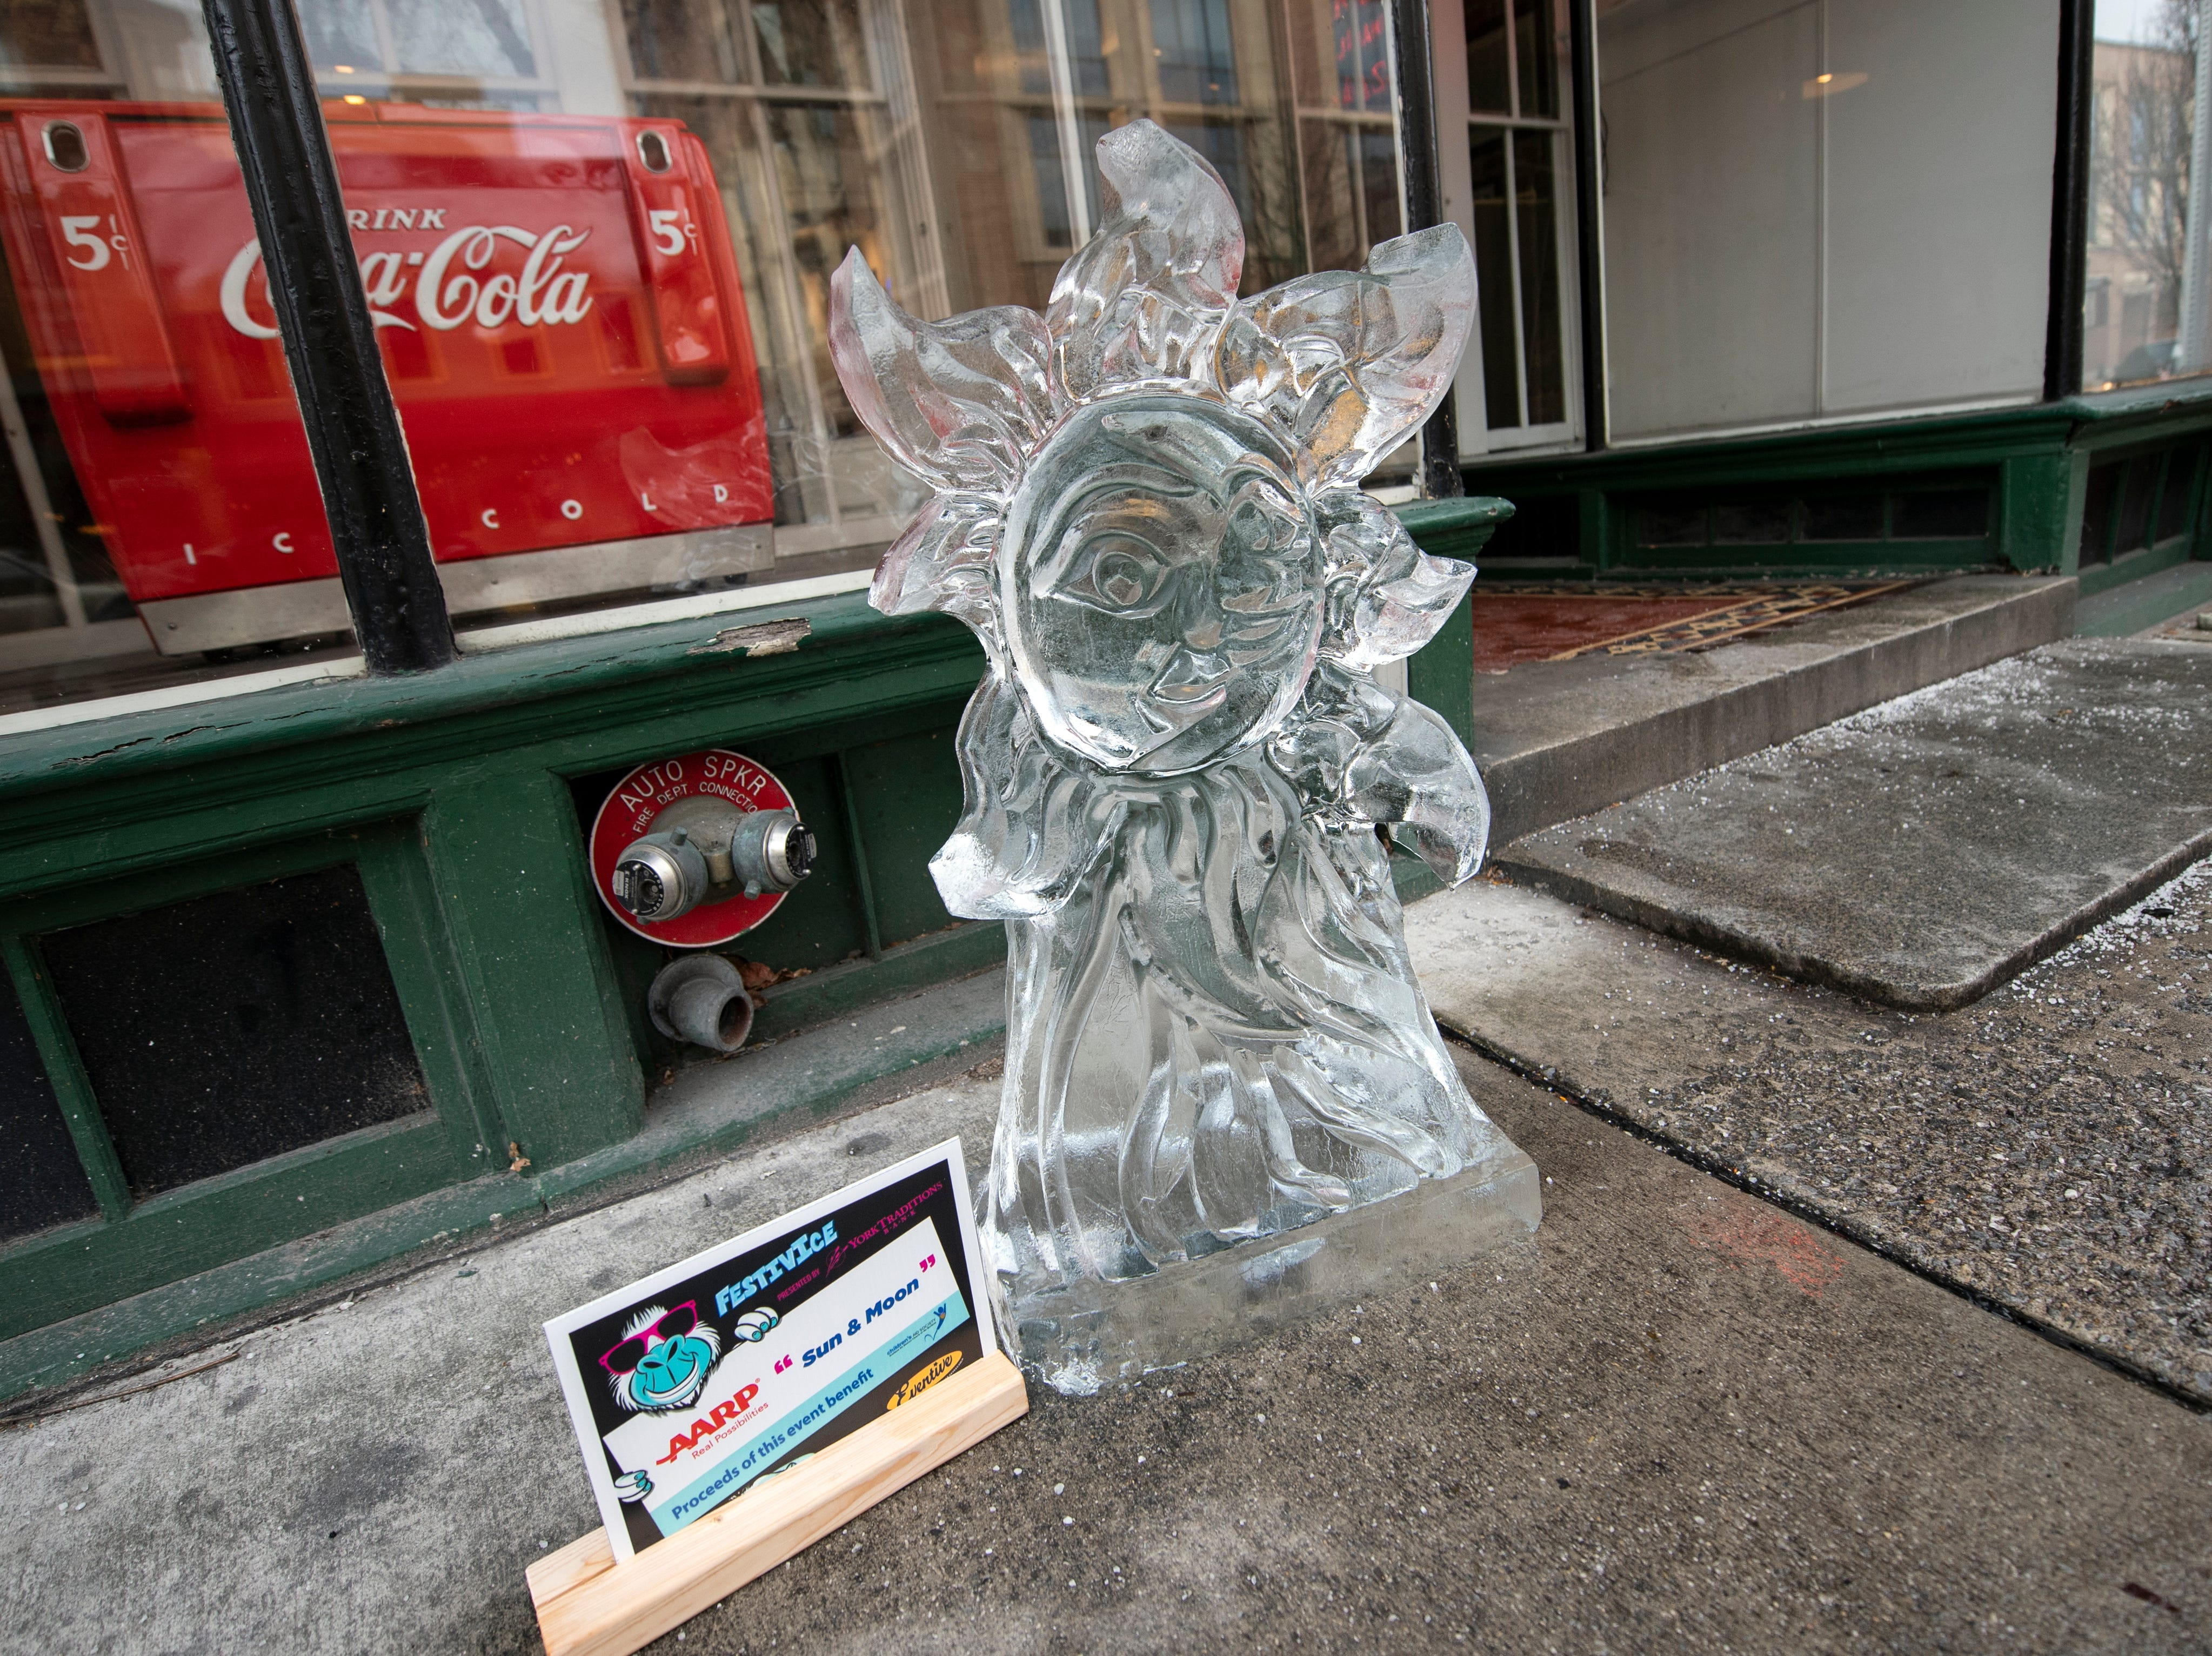 'Sun and Moon' is one of many ice sculptures downtown, Friday, Jan. 18, 2019. The FestivICE ice festival has interactive ice sculptures, an ice slide and more. The three-day event ends Saturday.